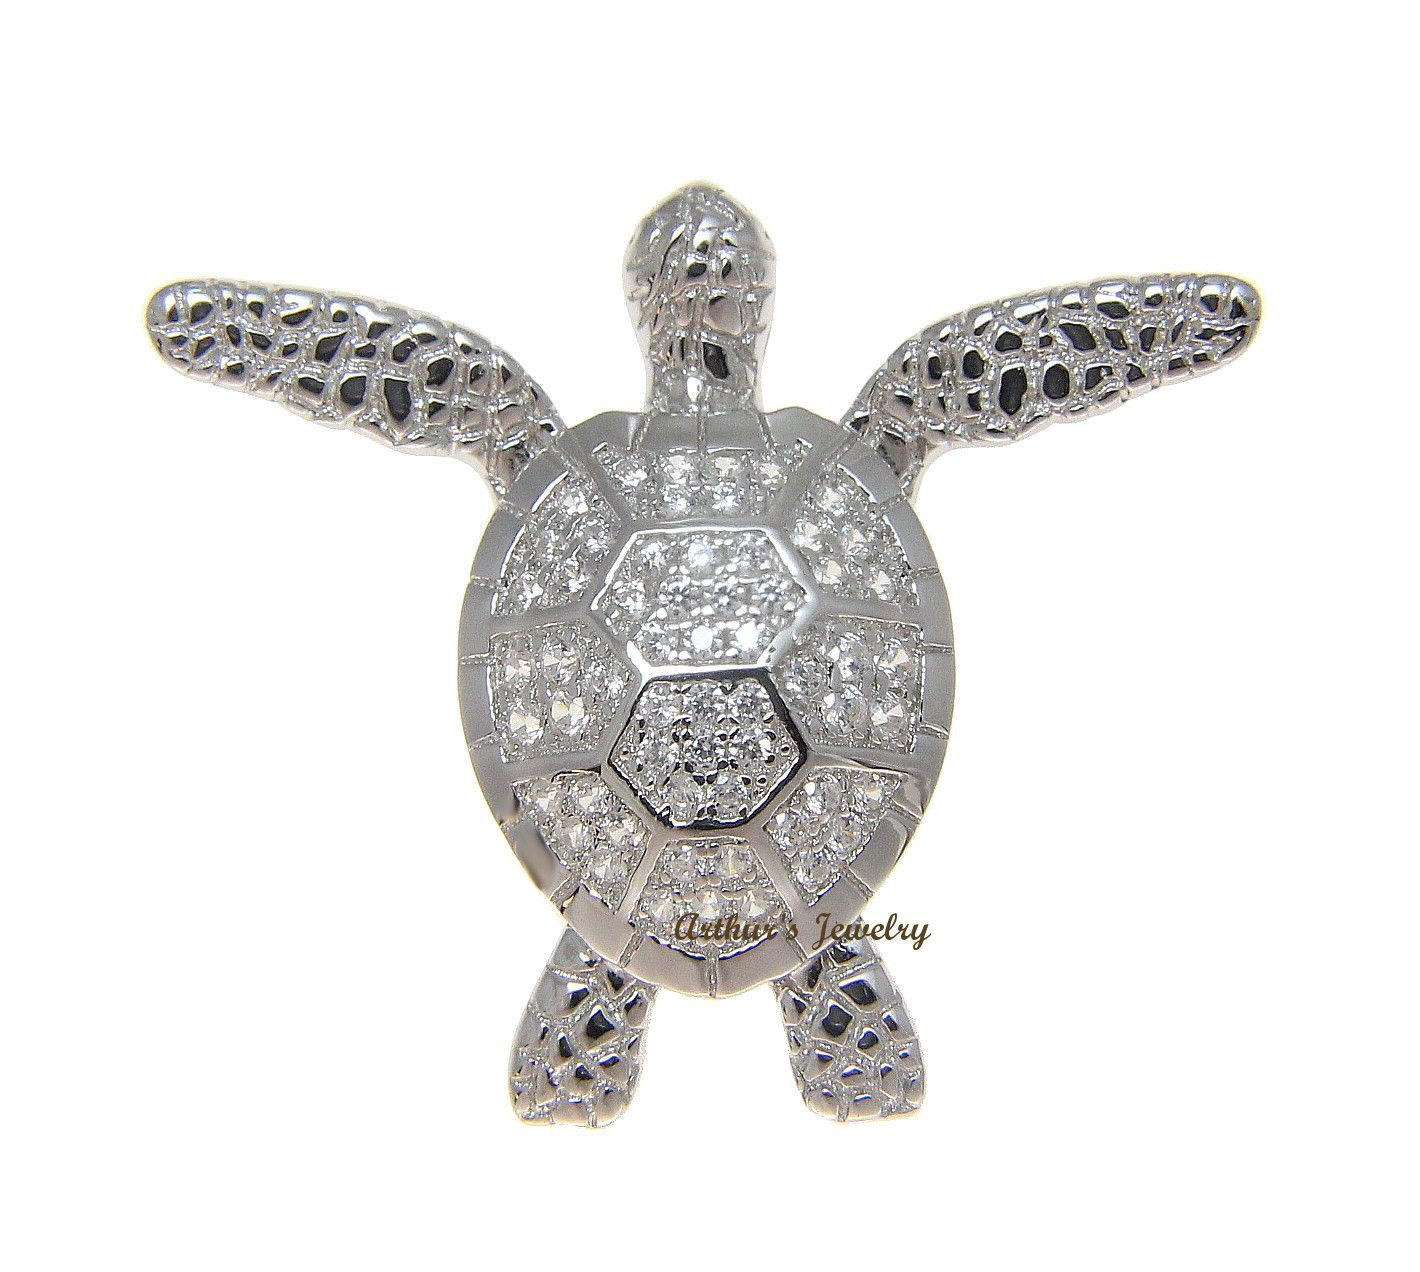 Green Enamel Turtle Charm Bead Solid 925 Sterling Silver Animal Charms Sea Tortoise Pendant Charm nvcaY5aezc